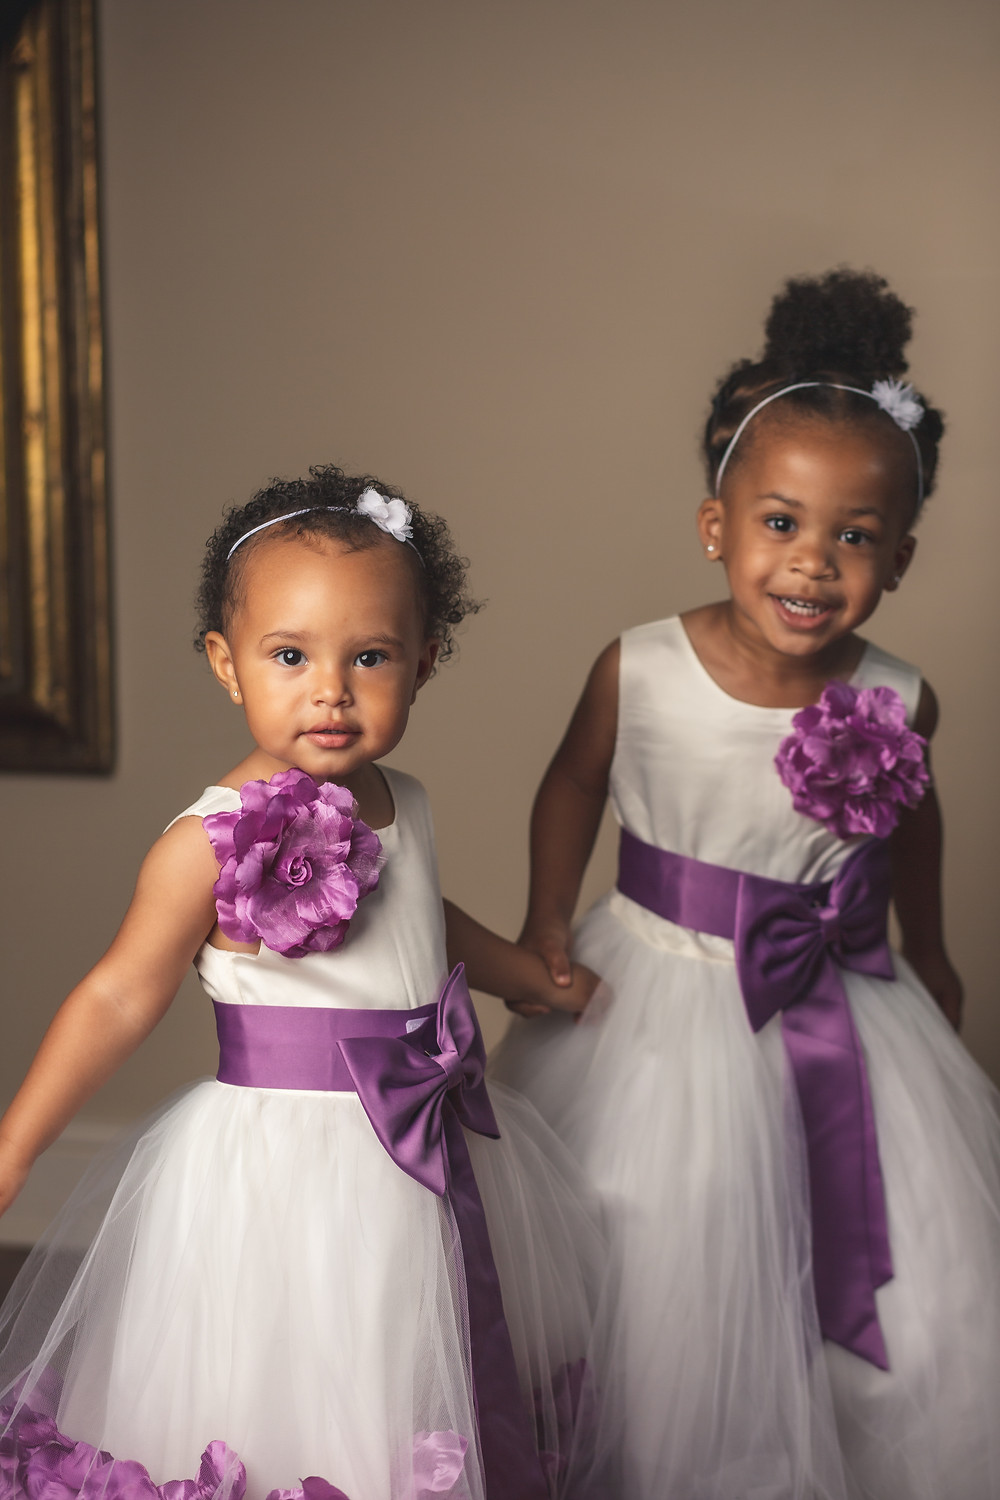 The junior bridesmaid and flower girl before the wedding ceremony at Crosskeys Vineyards in Mt. Crawford, Virginia.